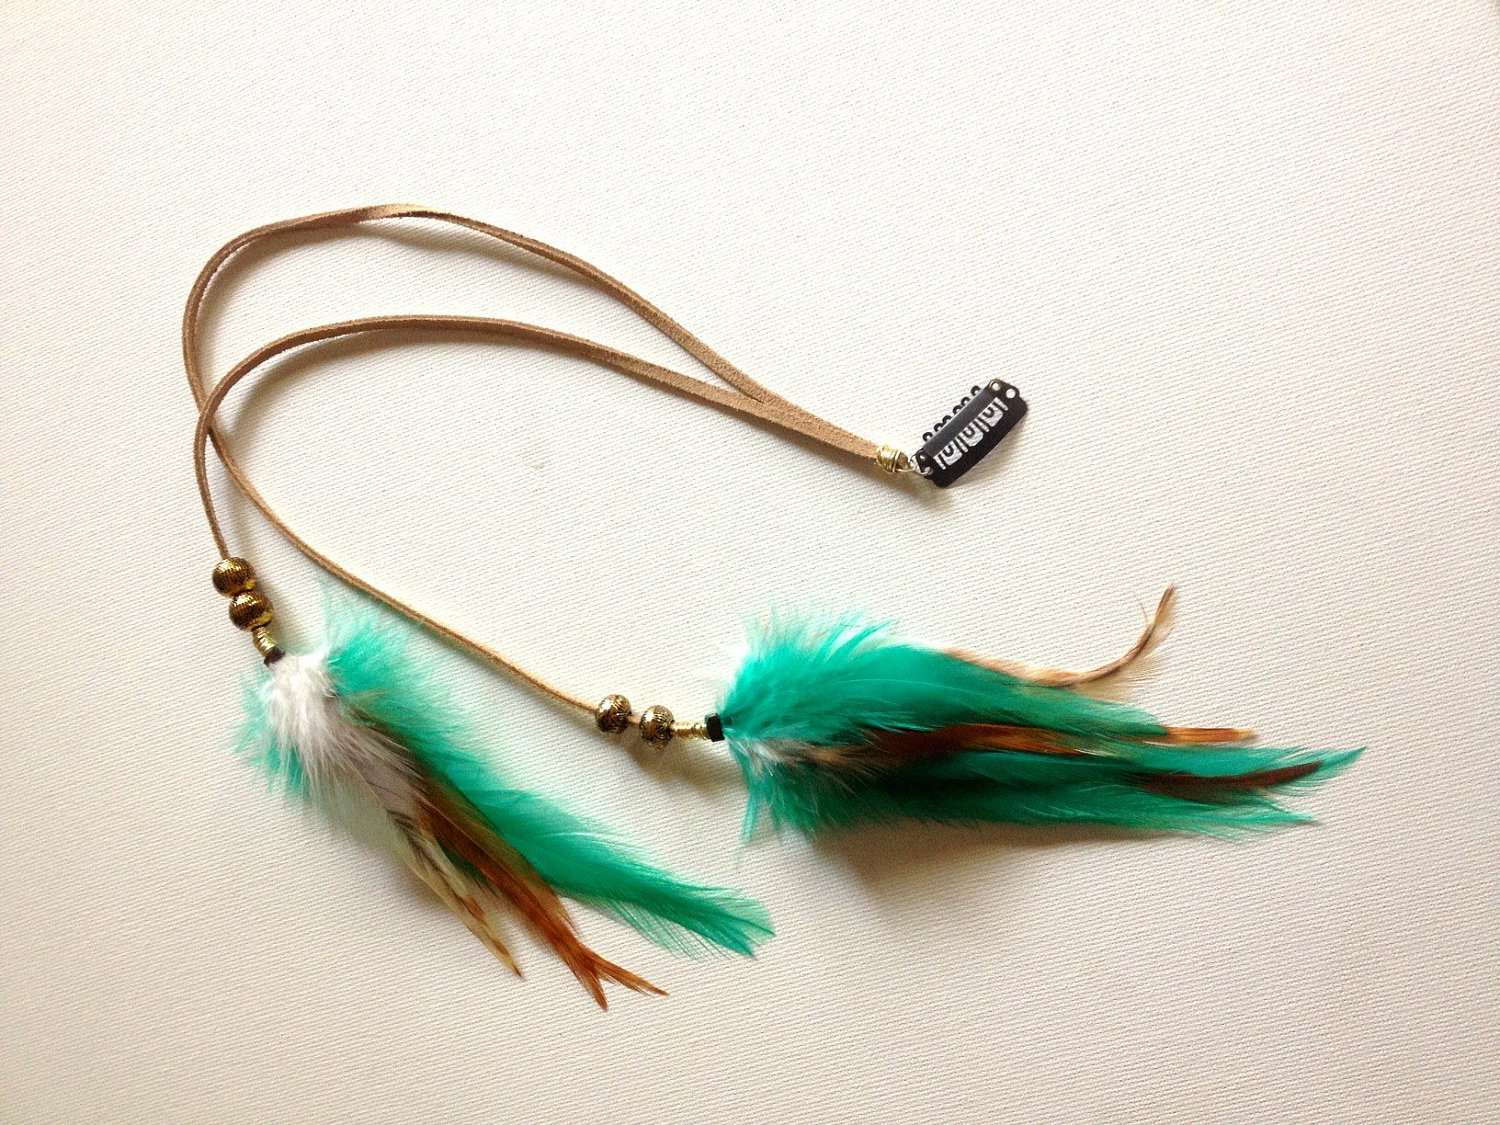 Tribal Bohemian Long Feather Clip With Beads, Leather, Ocean Turquoise, Ginger Hair Accessories - PrettyVagrant